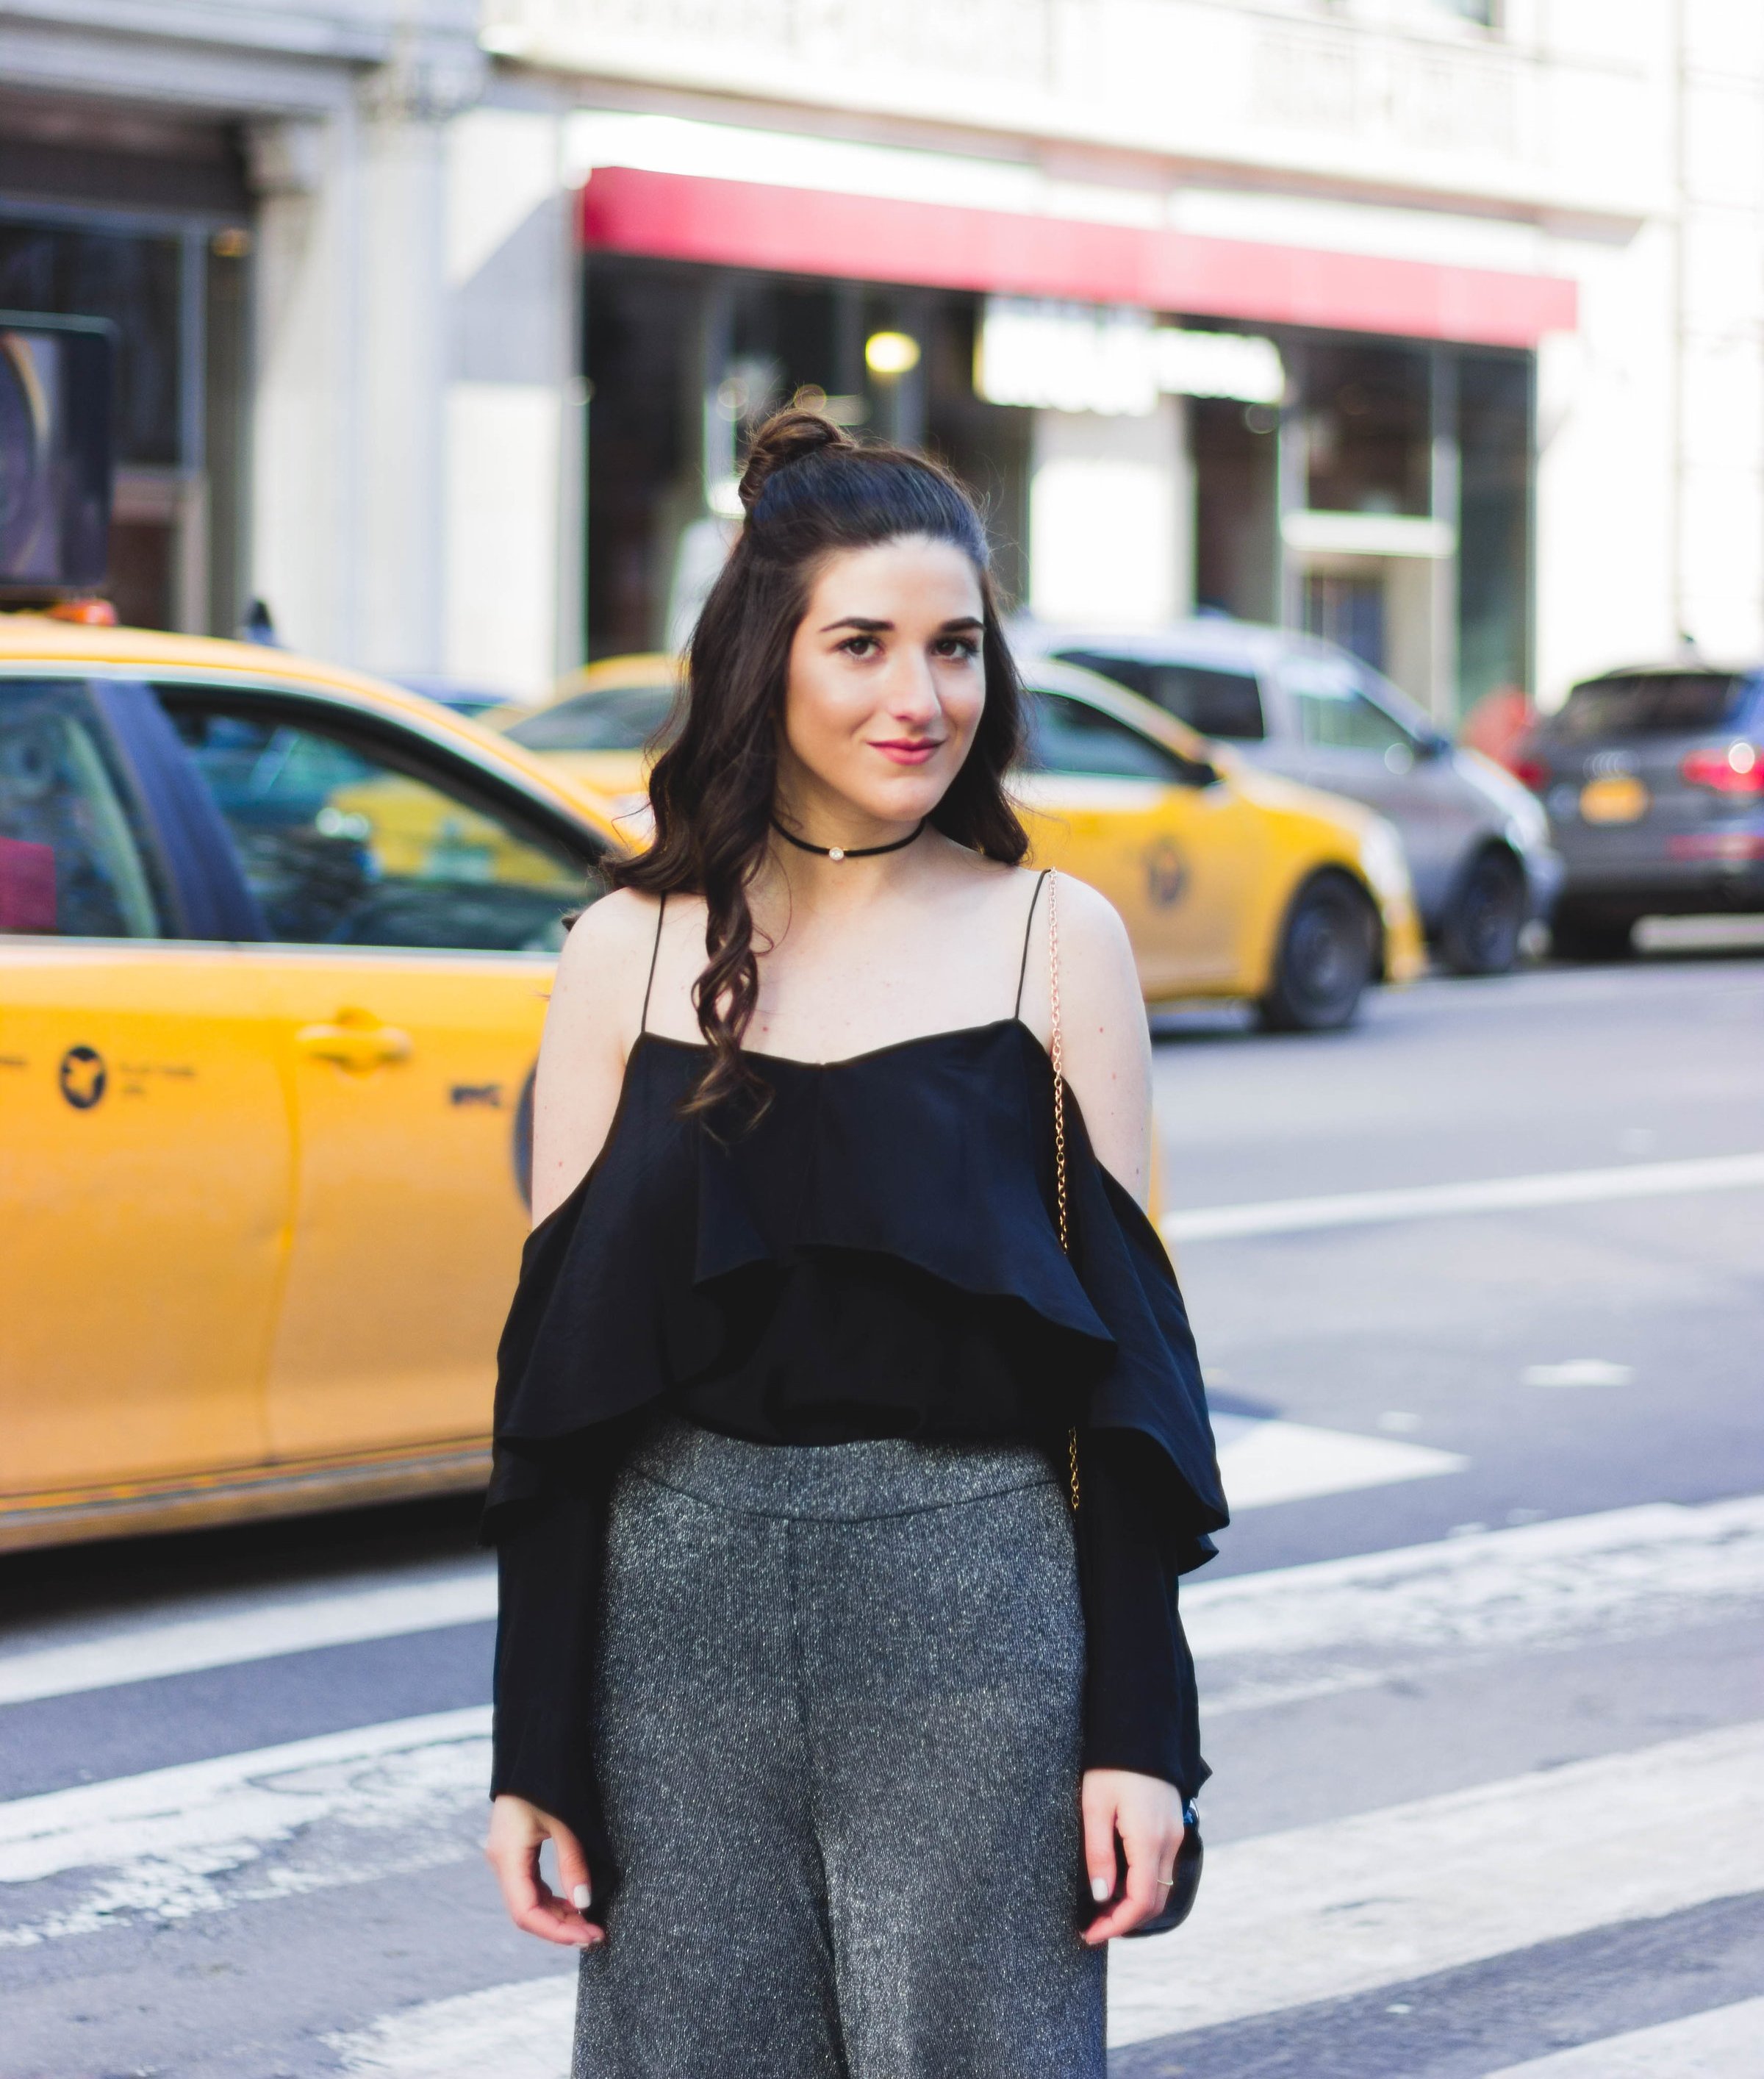 Metallic Pants Black Silk Top How To Find A Photographer Esther Santer Fashion Blog NYC Street Style Blogger Outfit OOTD Trendy Jay Godfrey Lips Clutch Bag Cold Shoulder Jewel Choker Tassel Slides Hair Topknot Girl Photoshoot Women Summer Shop Wearing.jpg